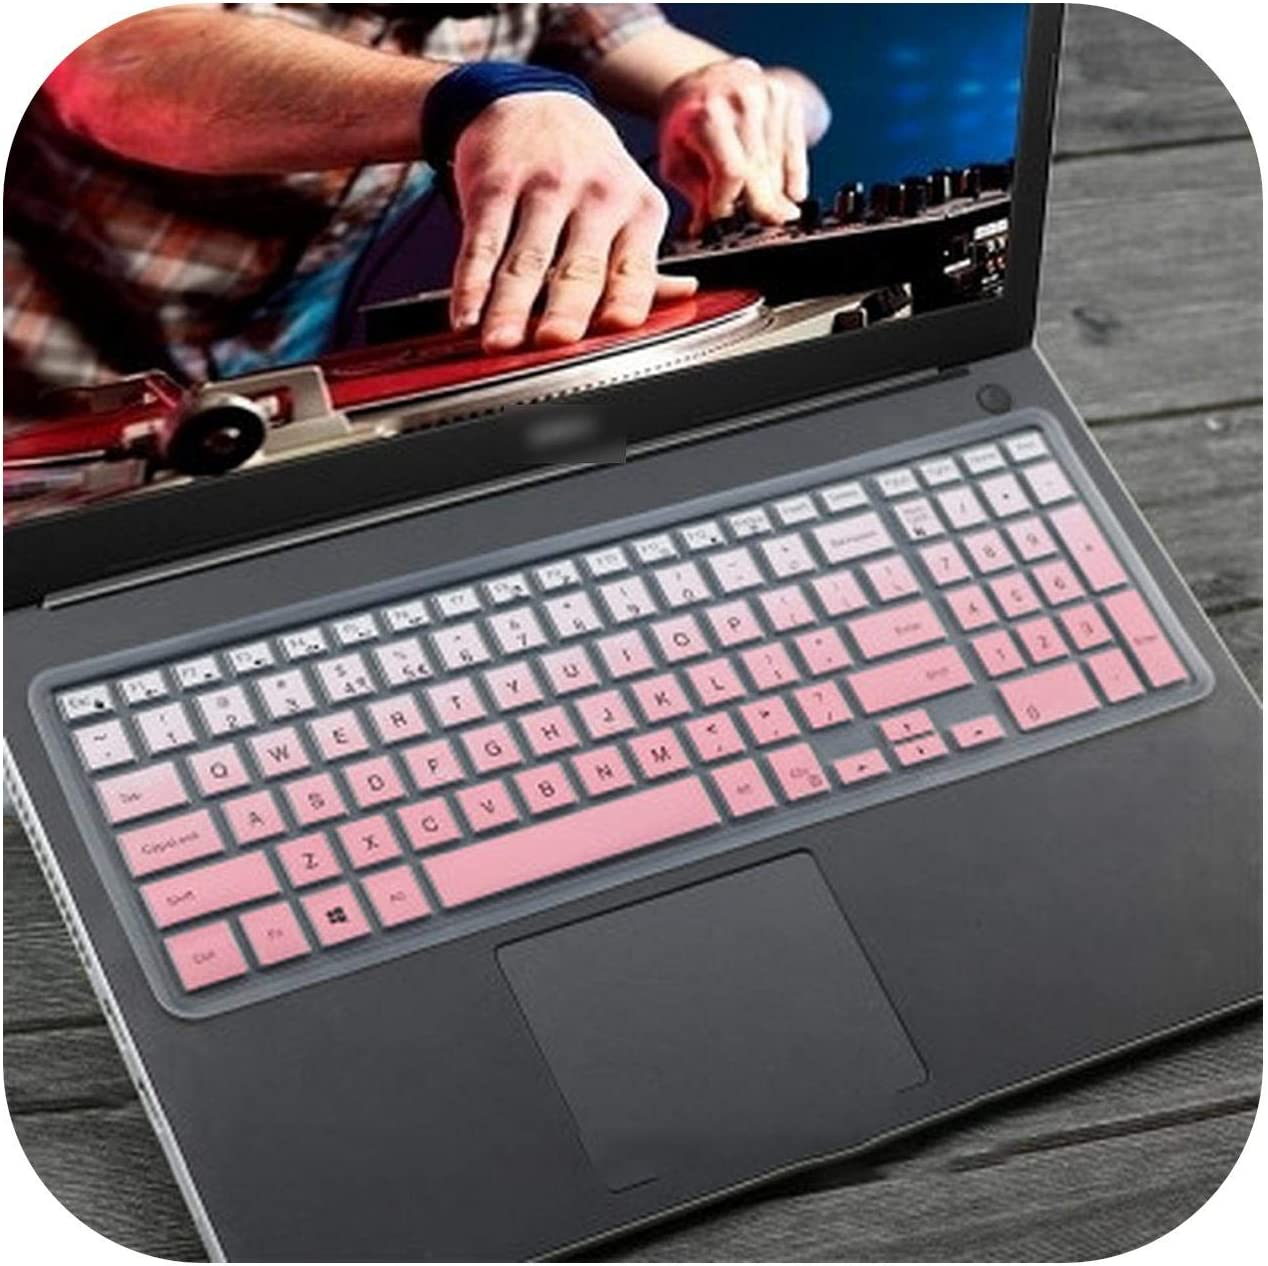 15.6 Inch Laptop Keyboard Cover Protector Skin for Dell Inspiron 15 3583 3585 3590 5557 G3 3573 3579 15Pd 15Gd 15Pr 17Pd G3-17-Gradualpink